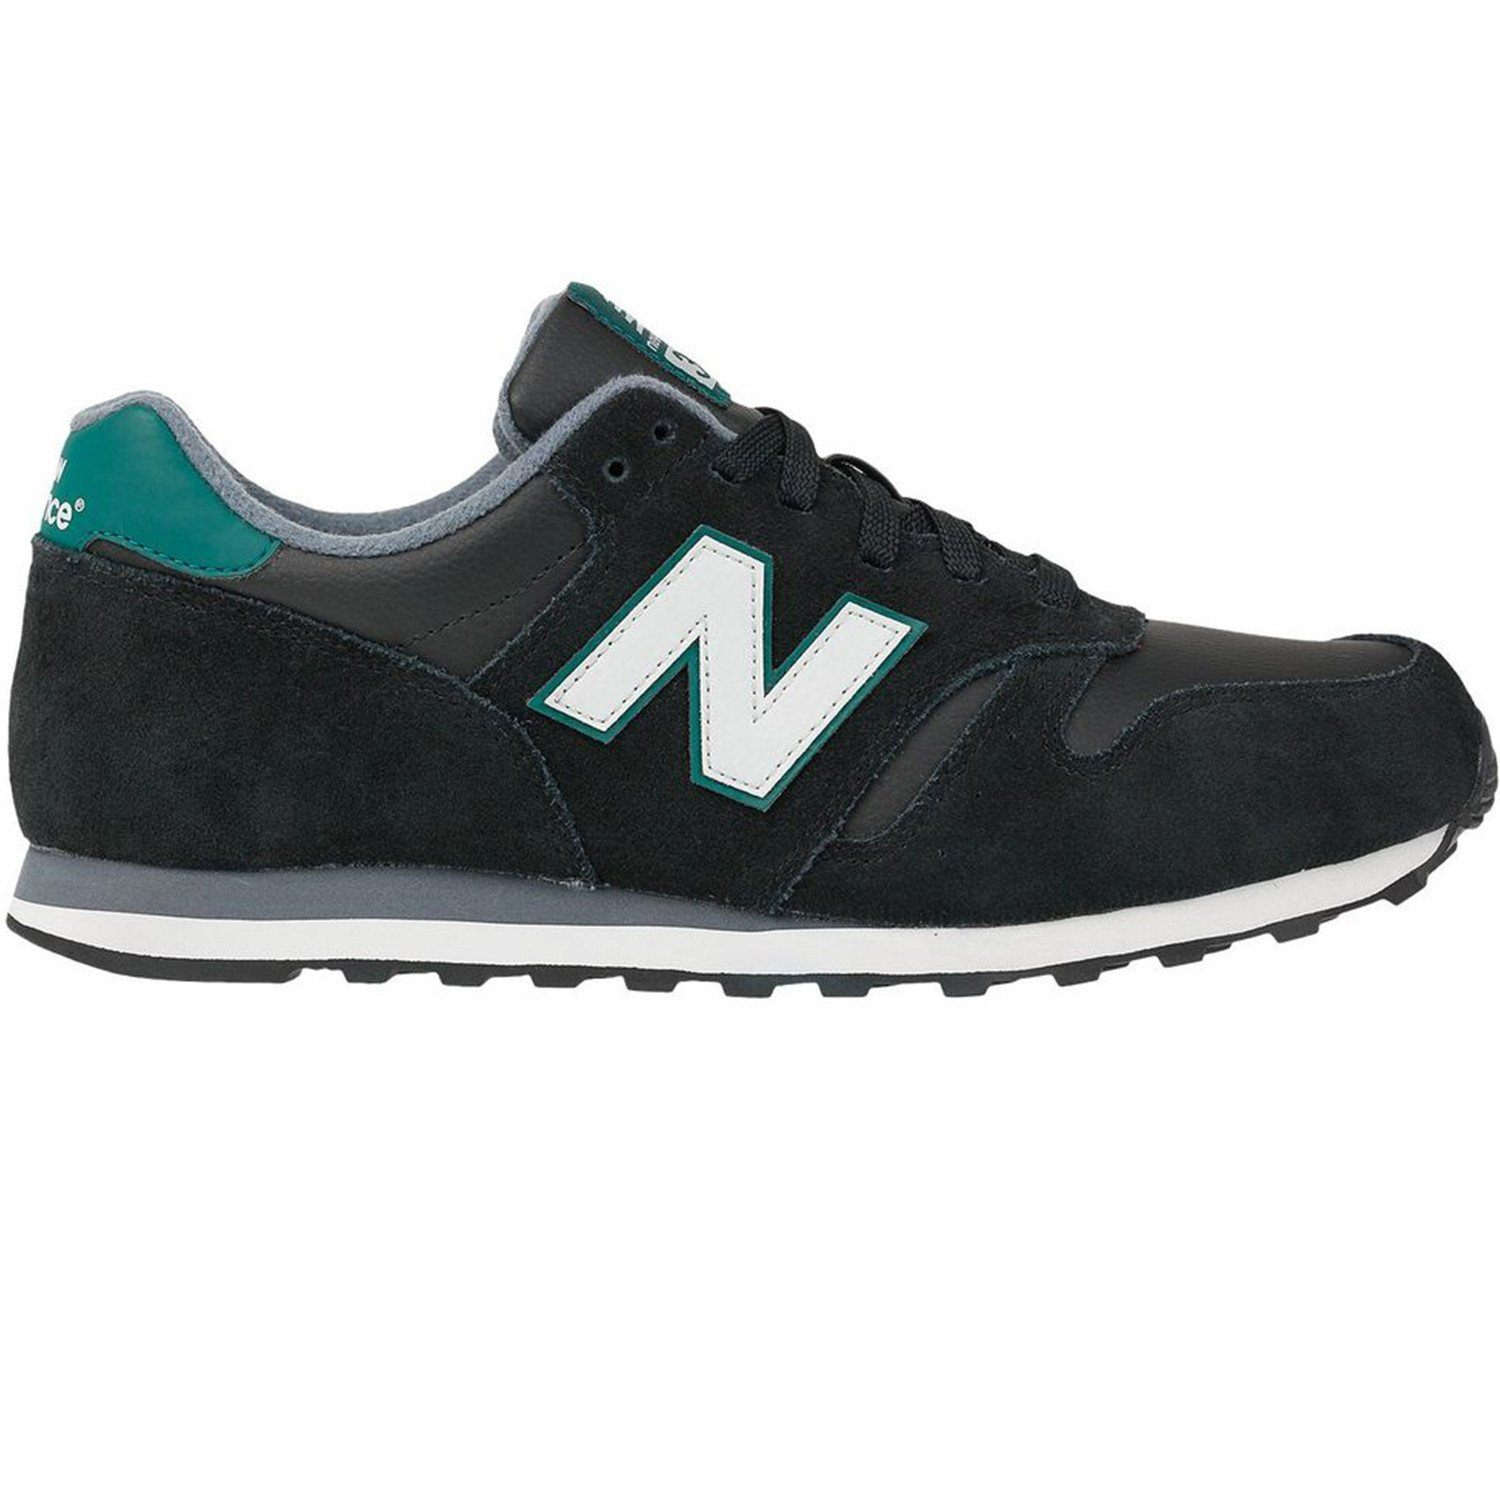 9f575ffb6659e New Balance Men's 373 Trainers - Black/Green - Trade Sports